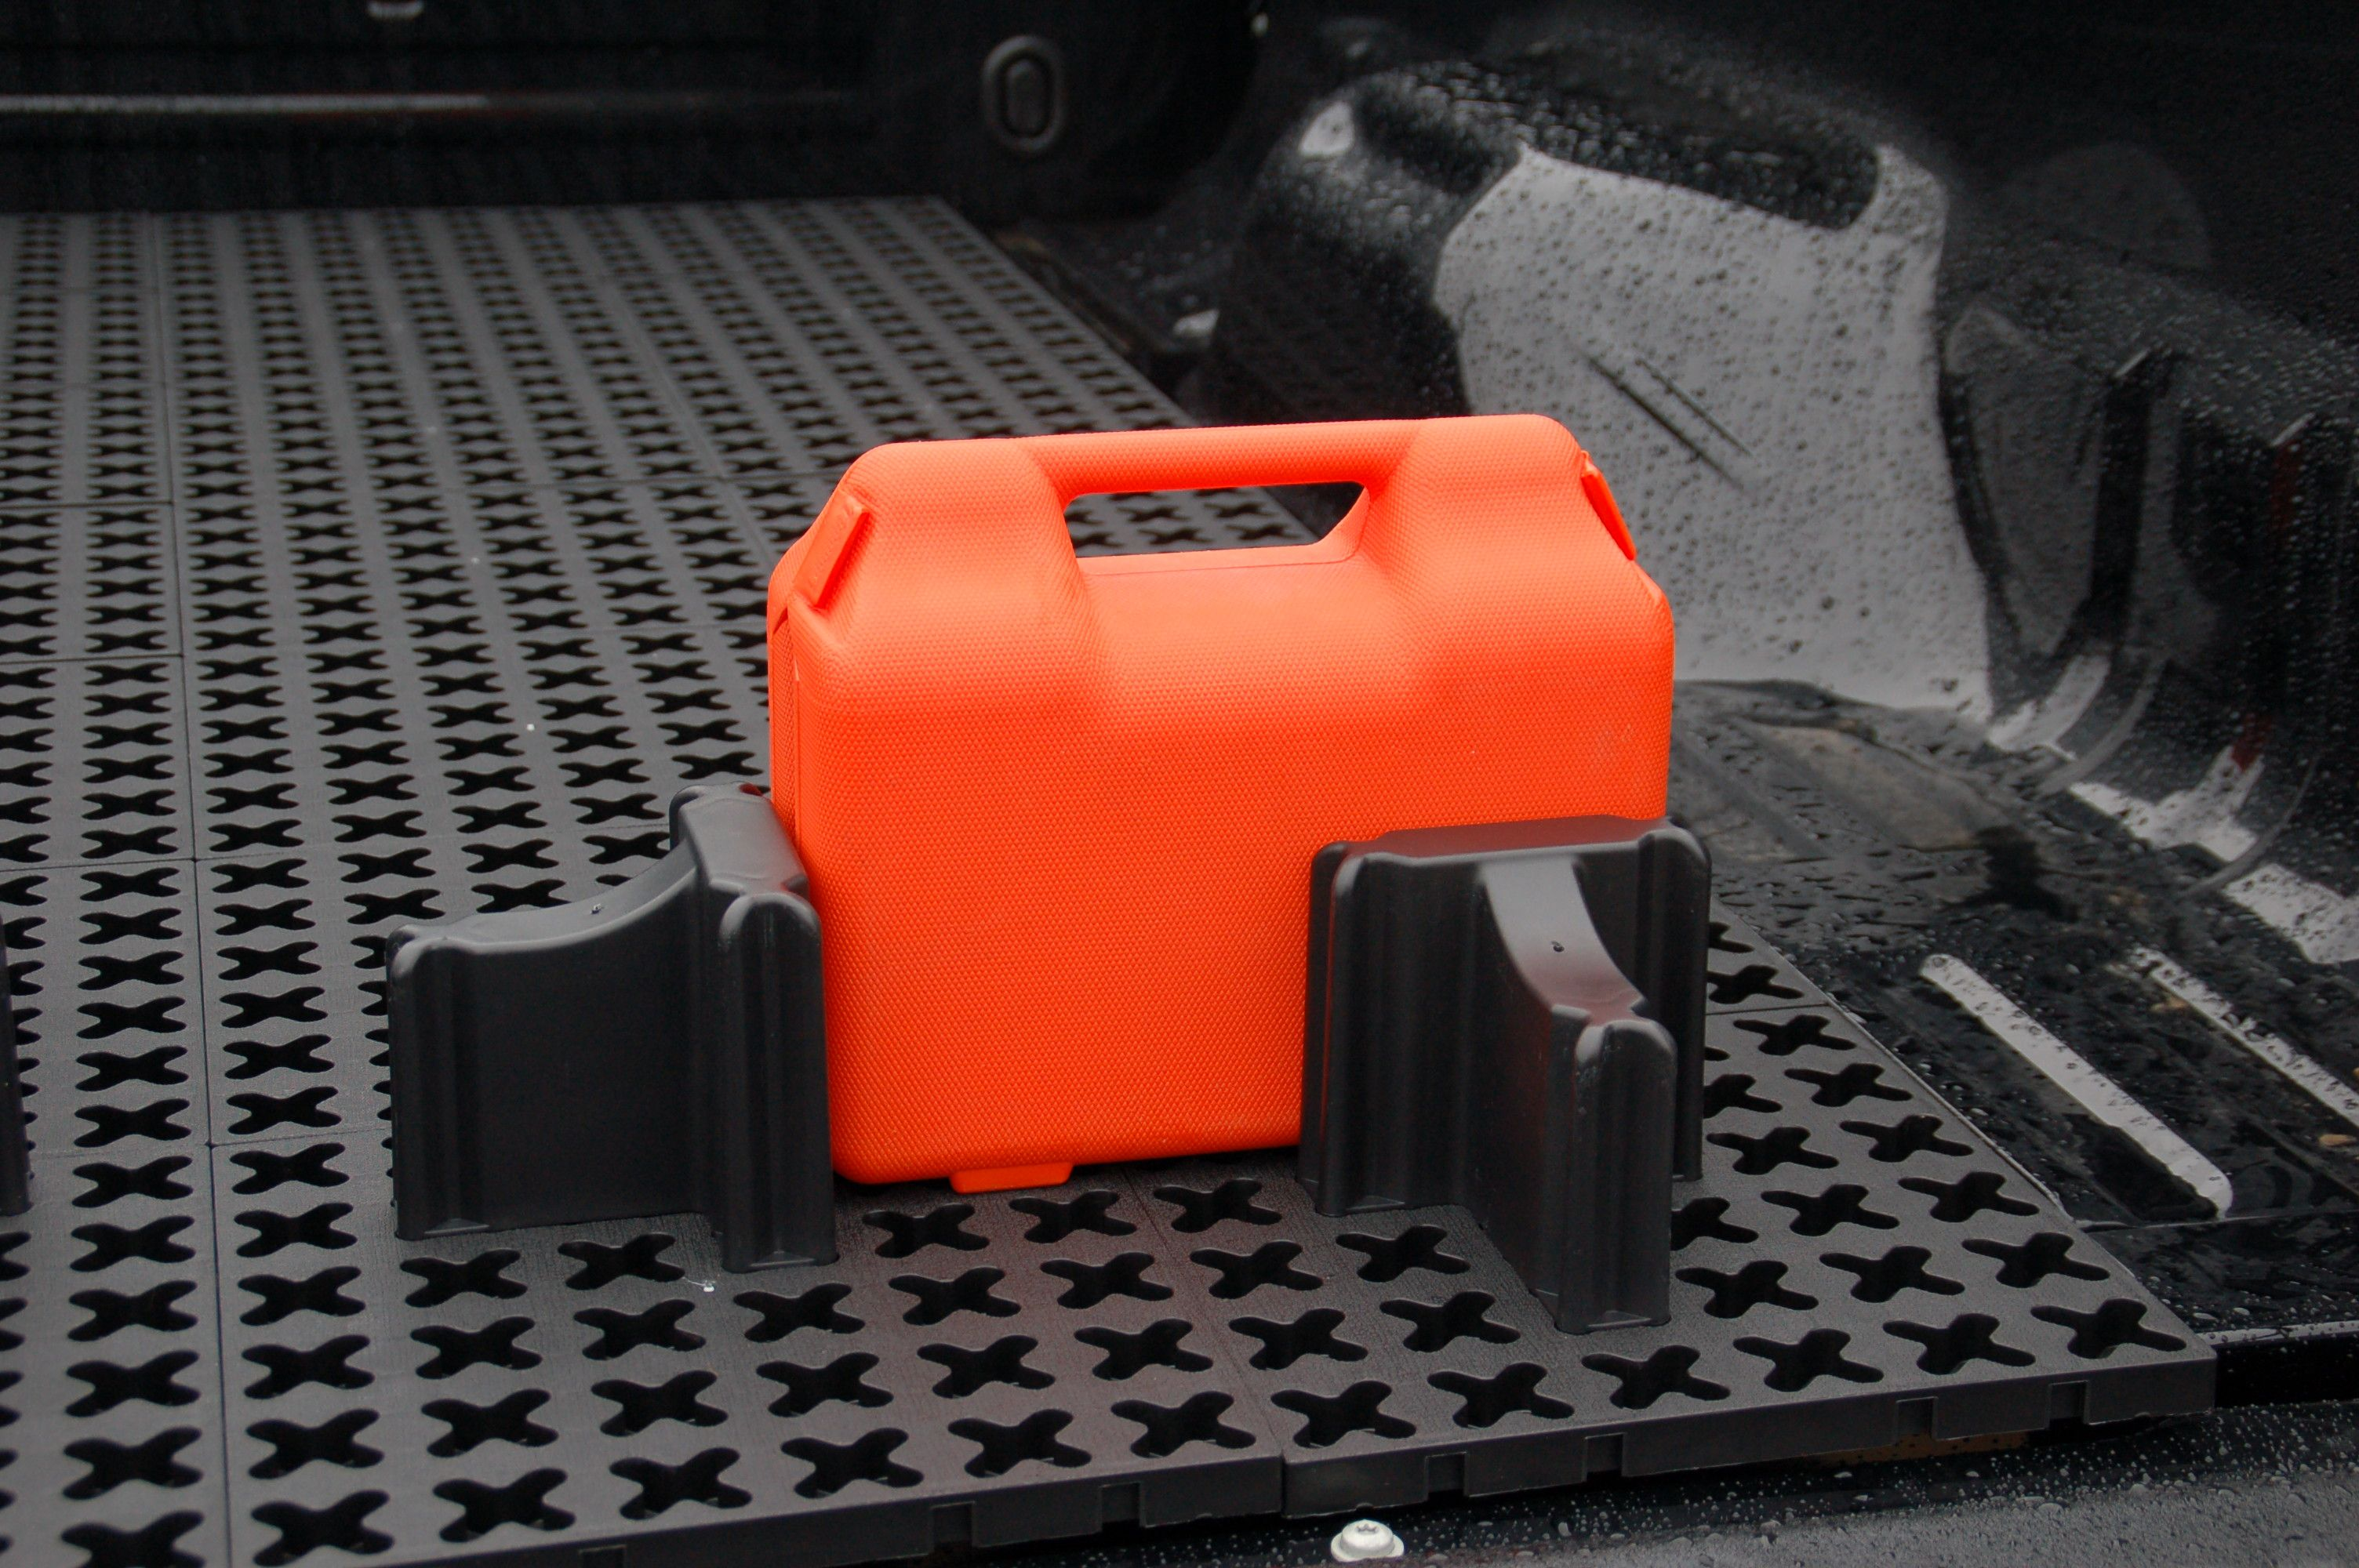 Camping gear stays put in truck bed with the Tmat Cargo